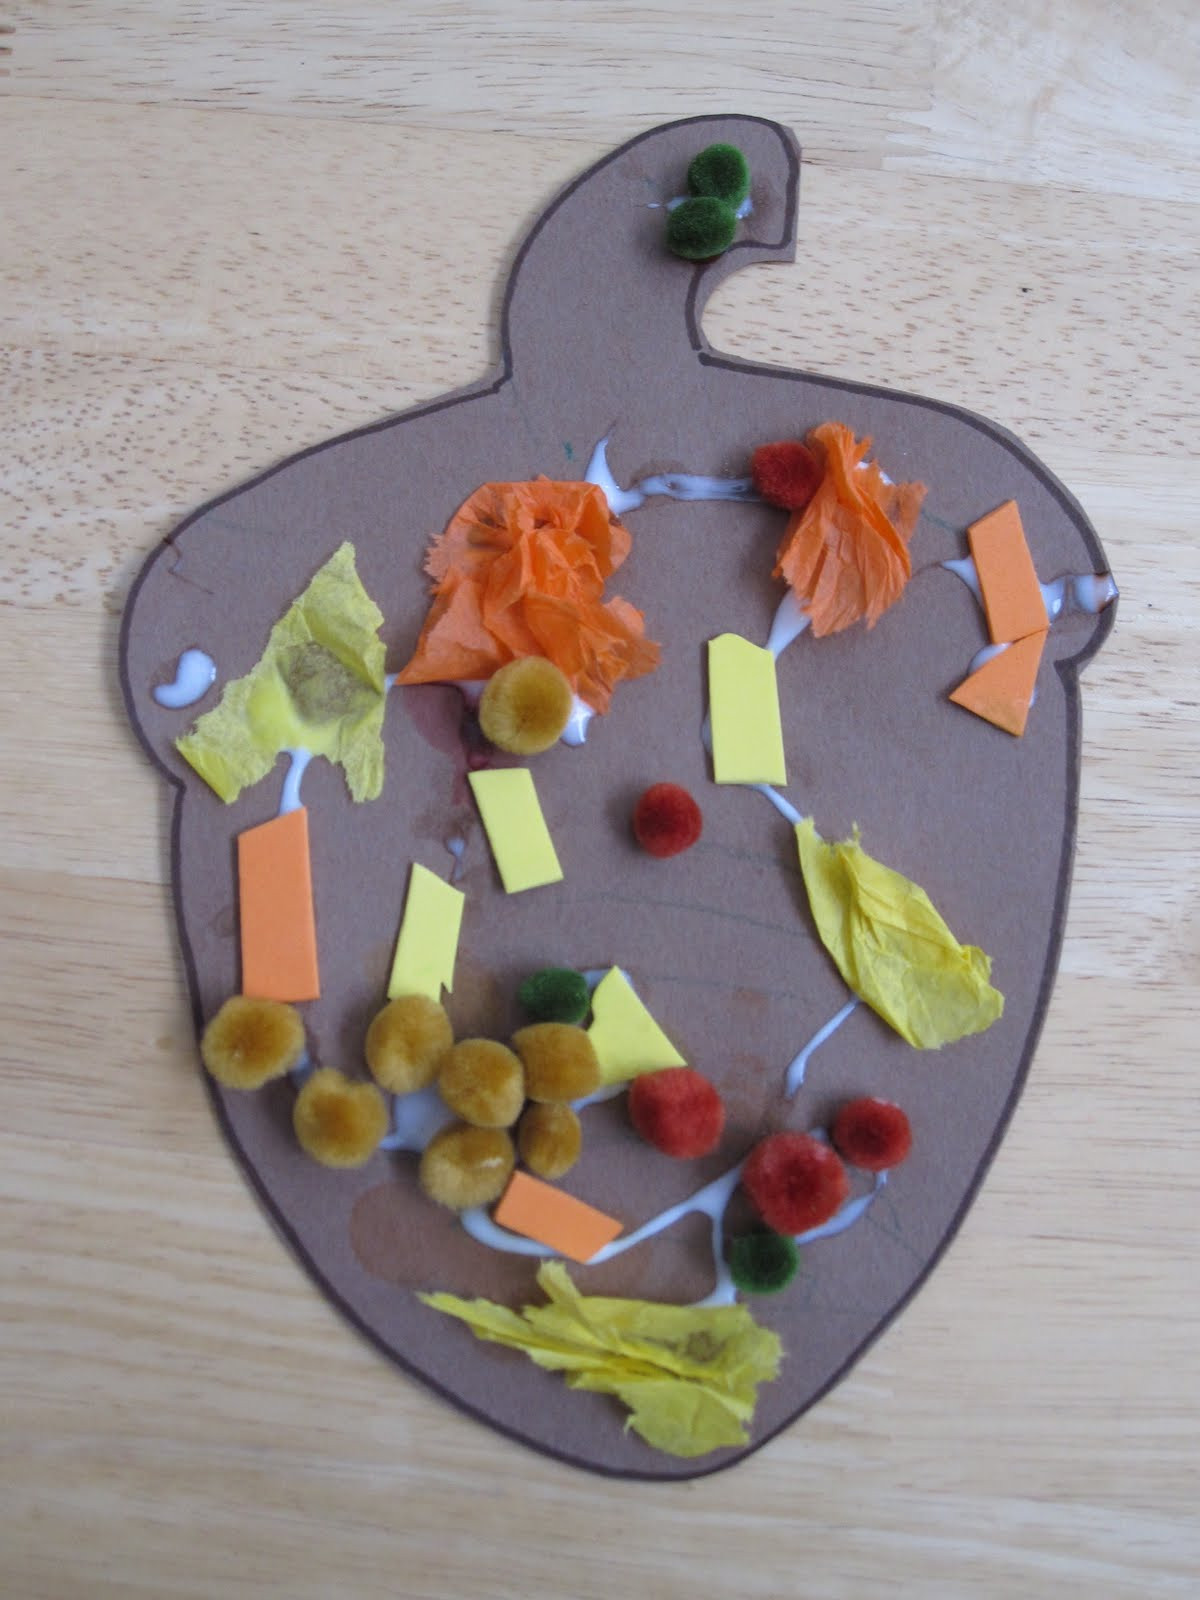 Best ideas about Toddler Craft Ideas 2 Year Old . Save or Pin Toddler Approved Easy Peasy Fall Collages Now.